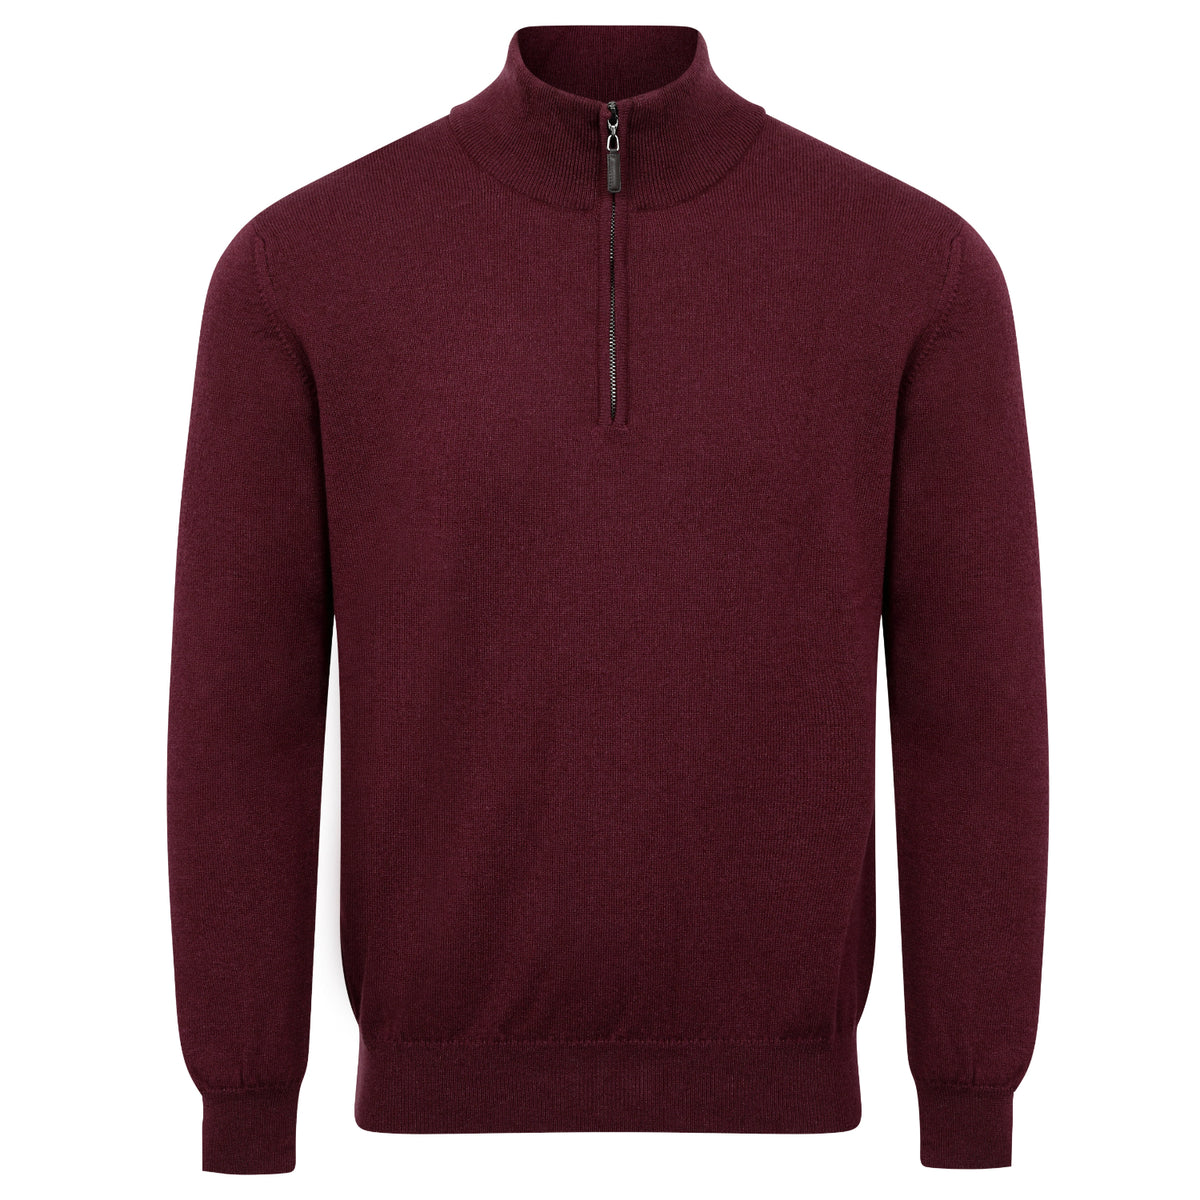 Johnstons of Elgin | Mens 2-Ply Cashmere Zip Turtle Neck | Aubergine Wine | Shop now at The Cashmere Choice | London